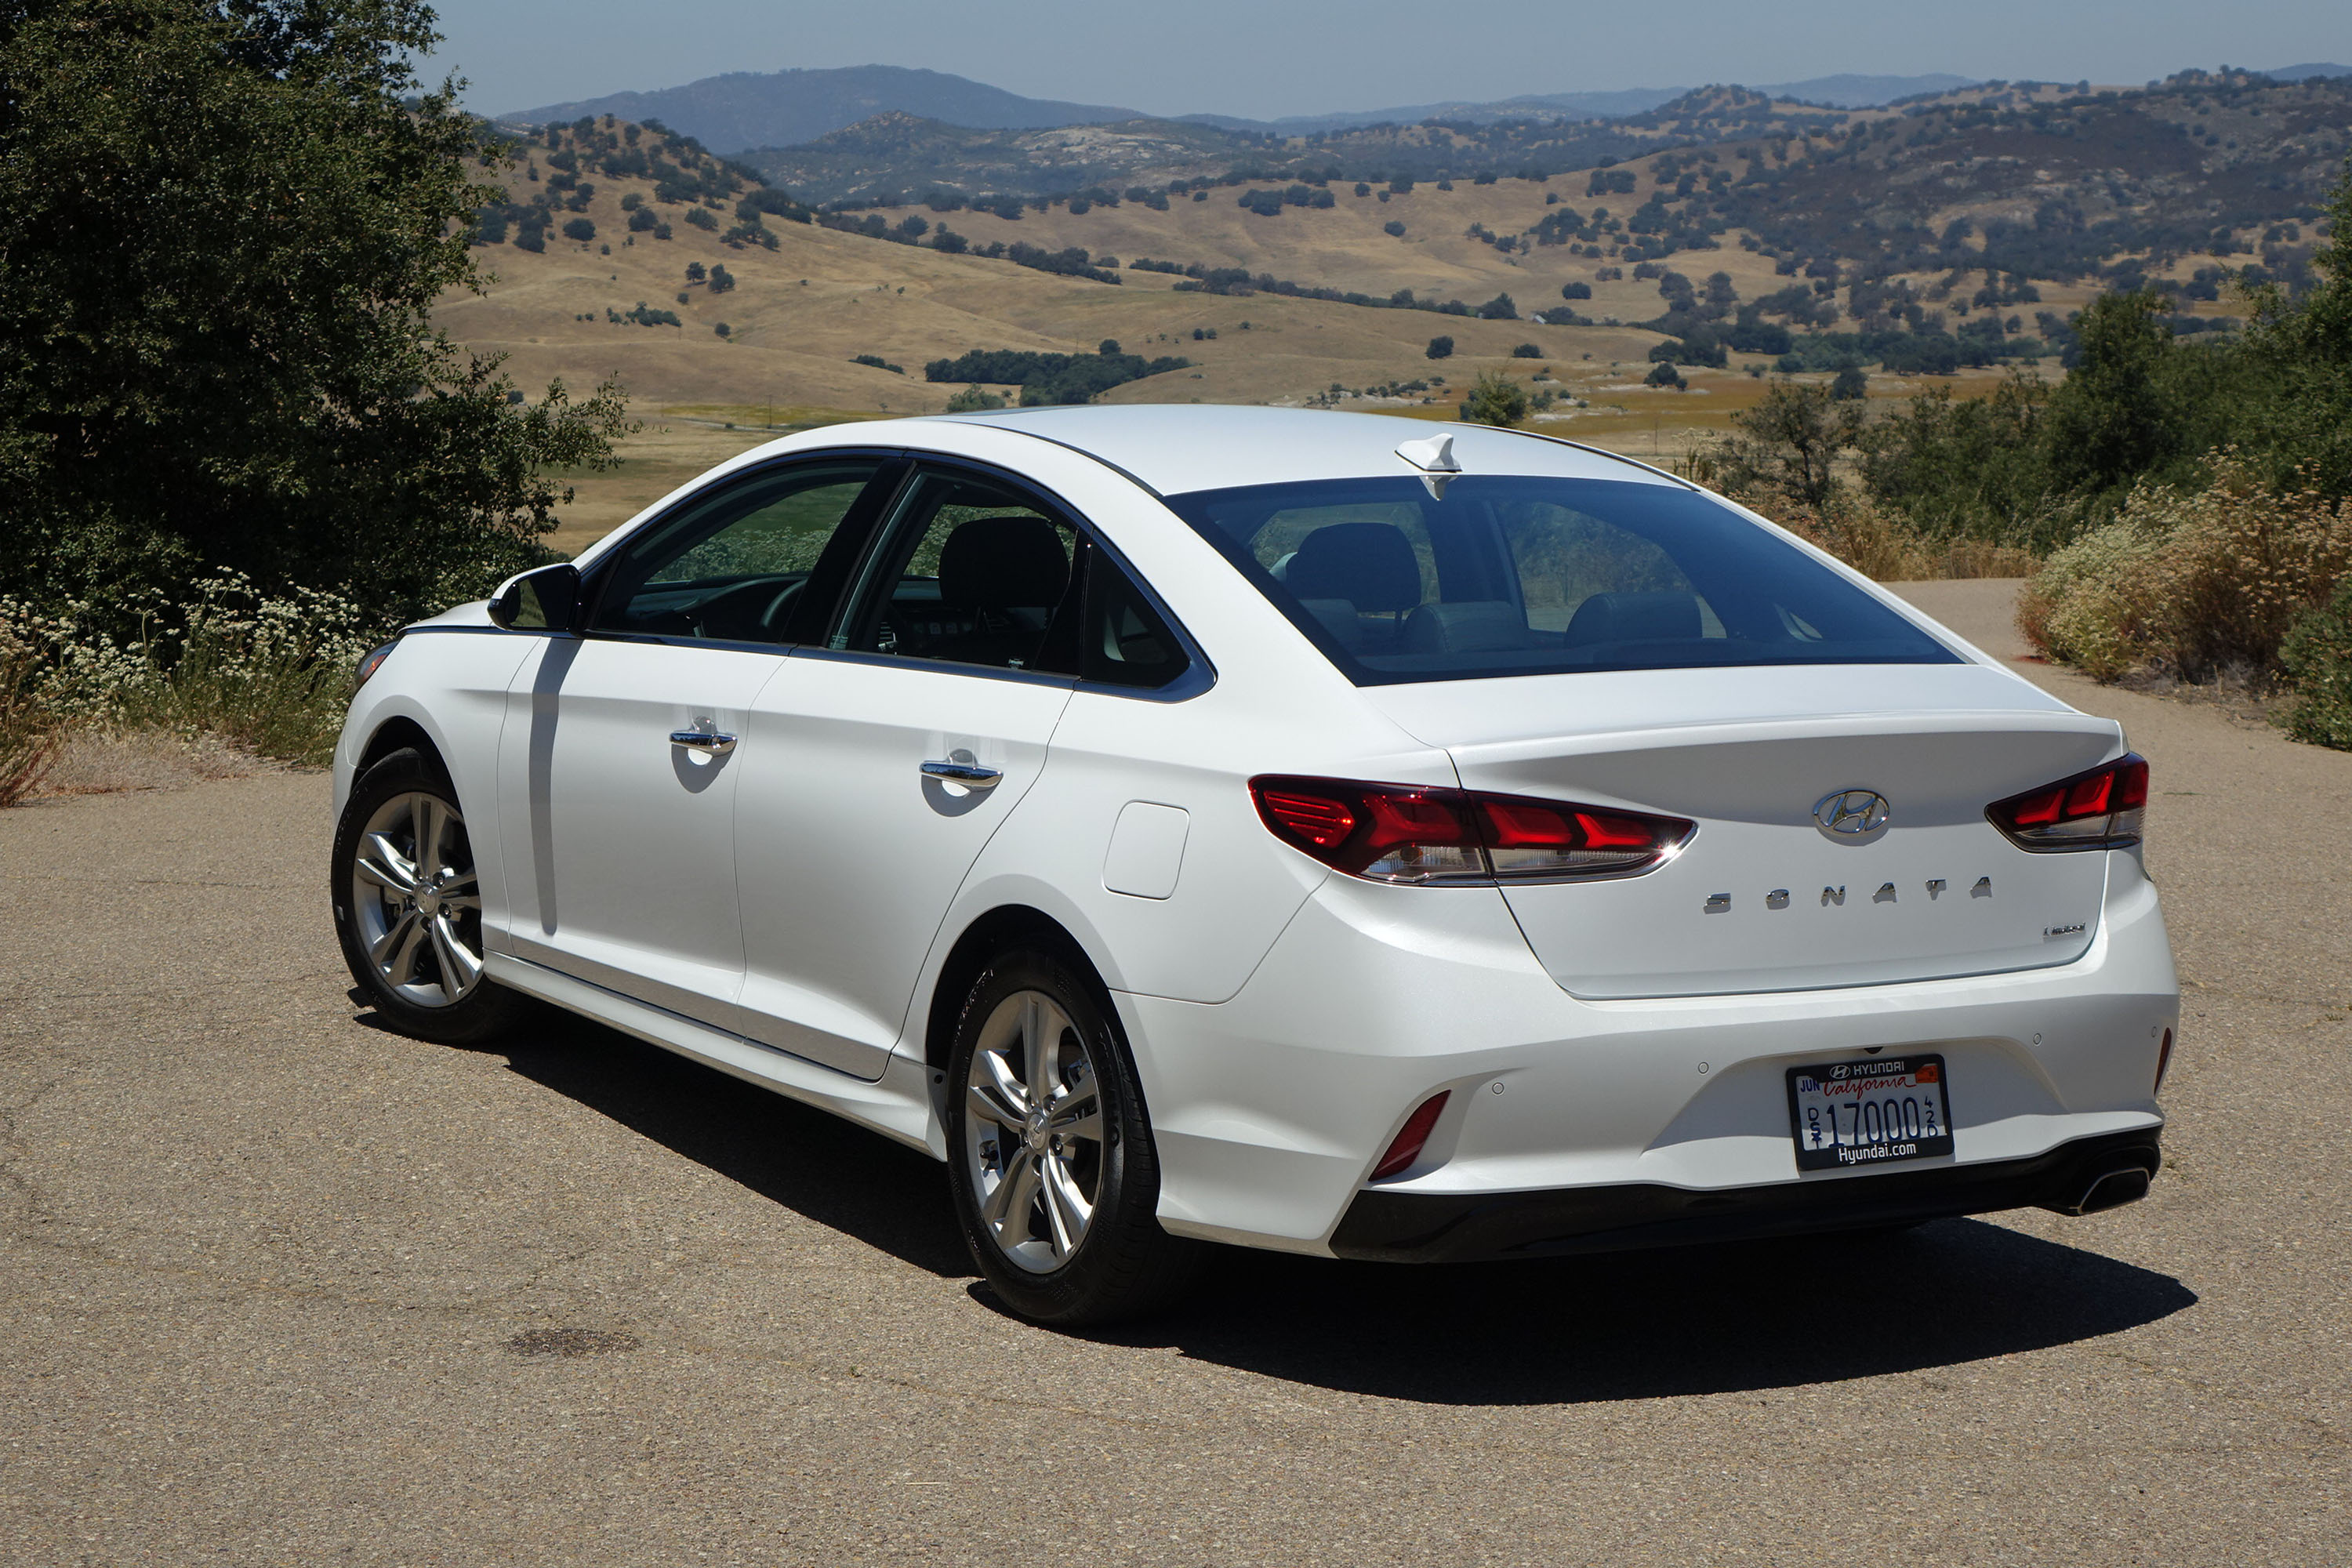 New Mazda 6 2019 >> 2018 Hyundai Sonata first drive: Finally looking the part